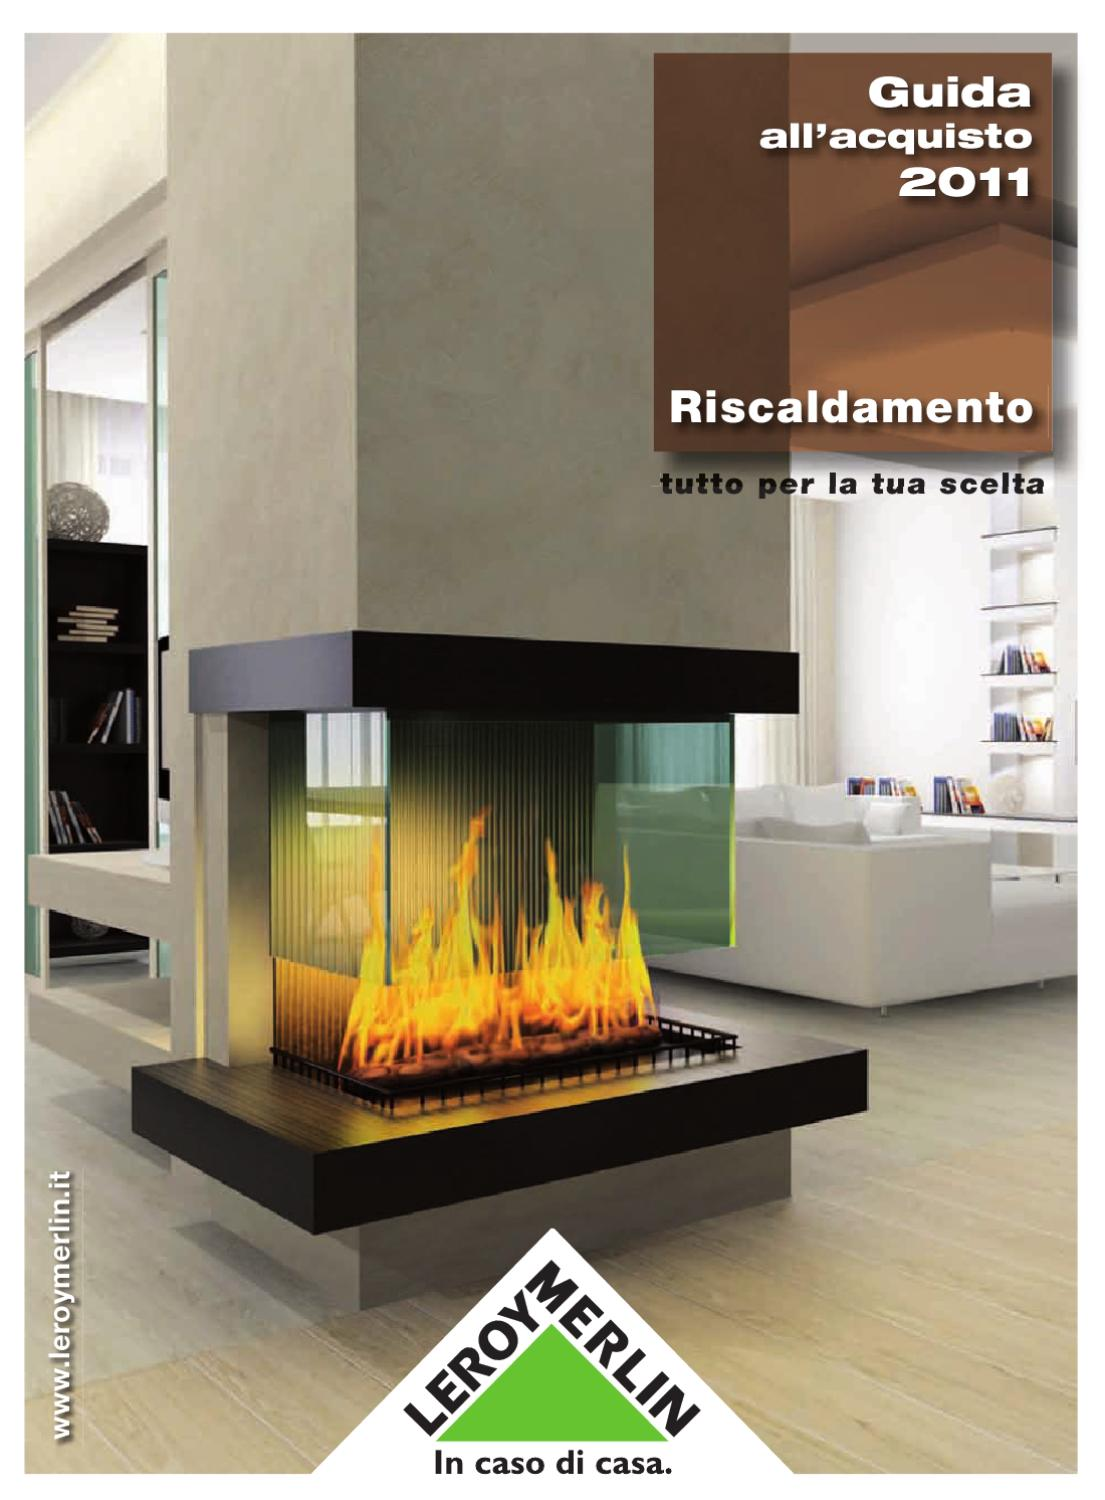 Leroy merlin riscaldamento by gaetano nicotra issuu for Leroy merlin camini